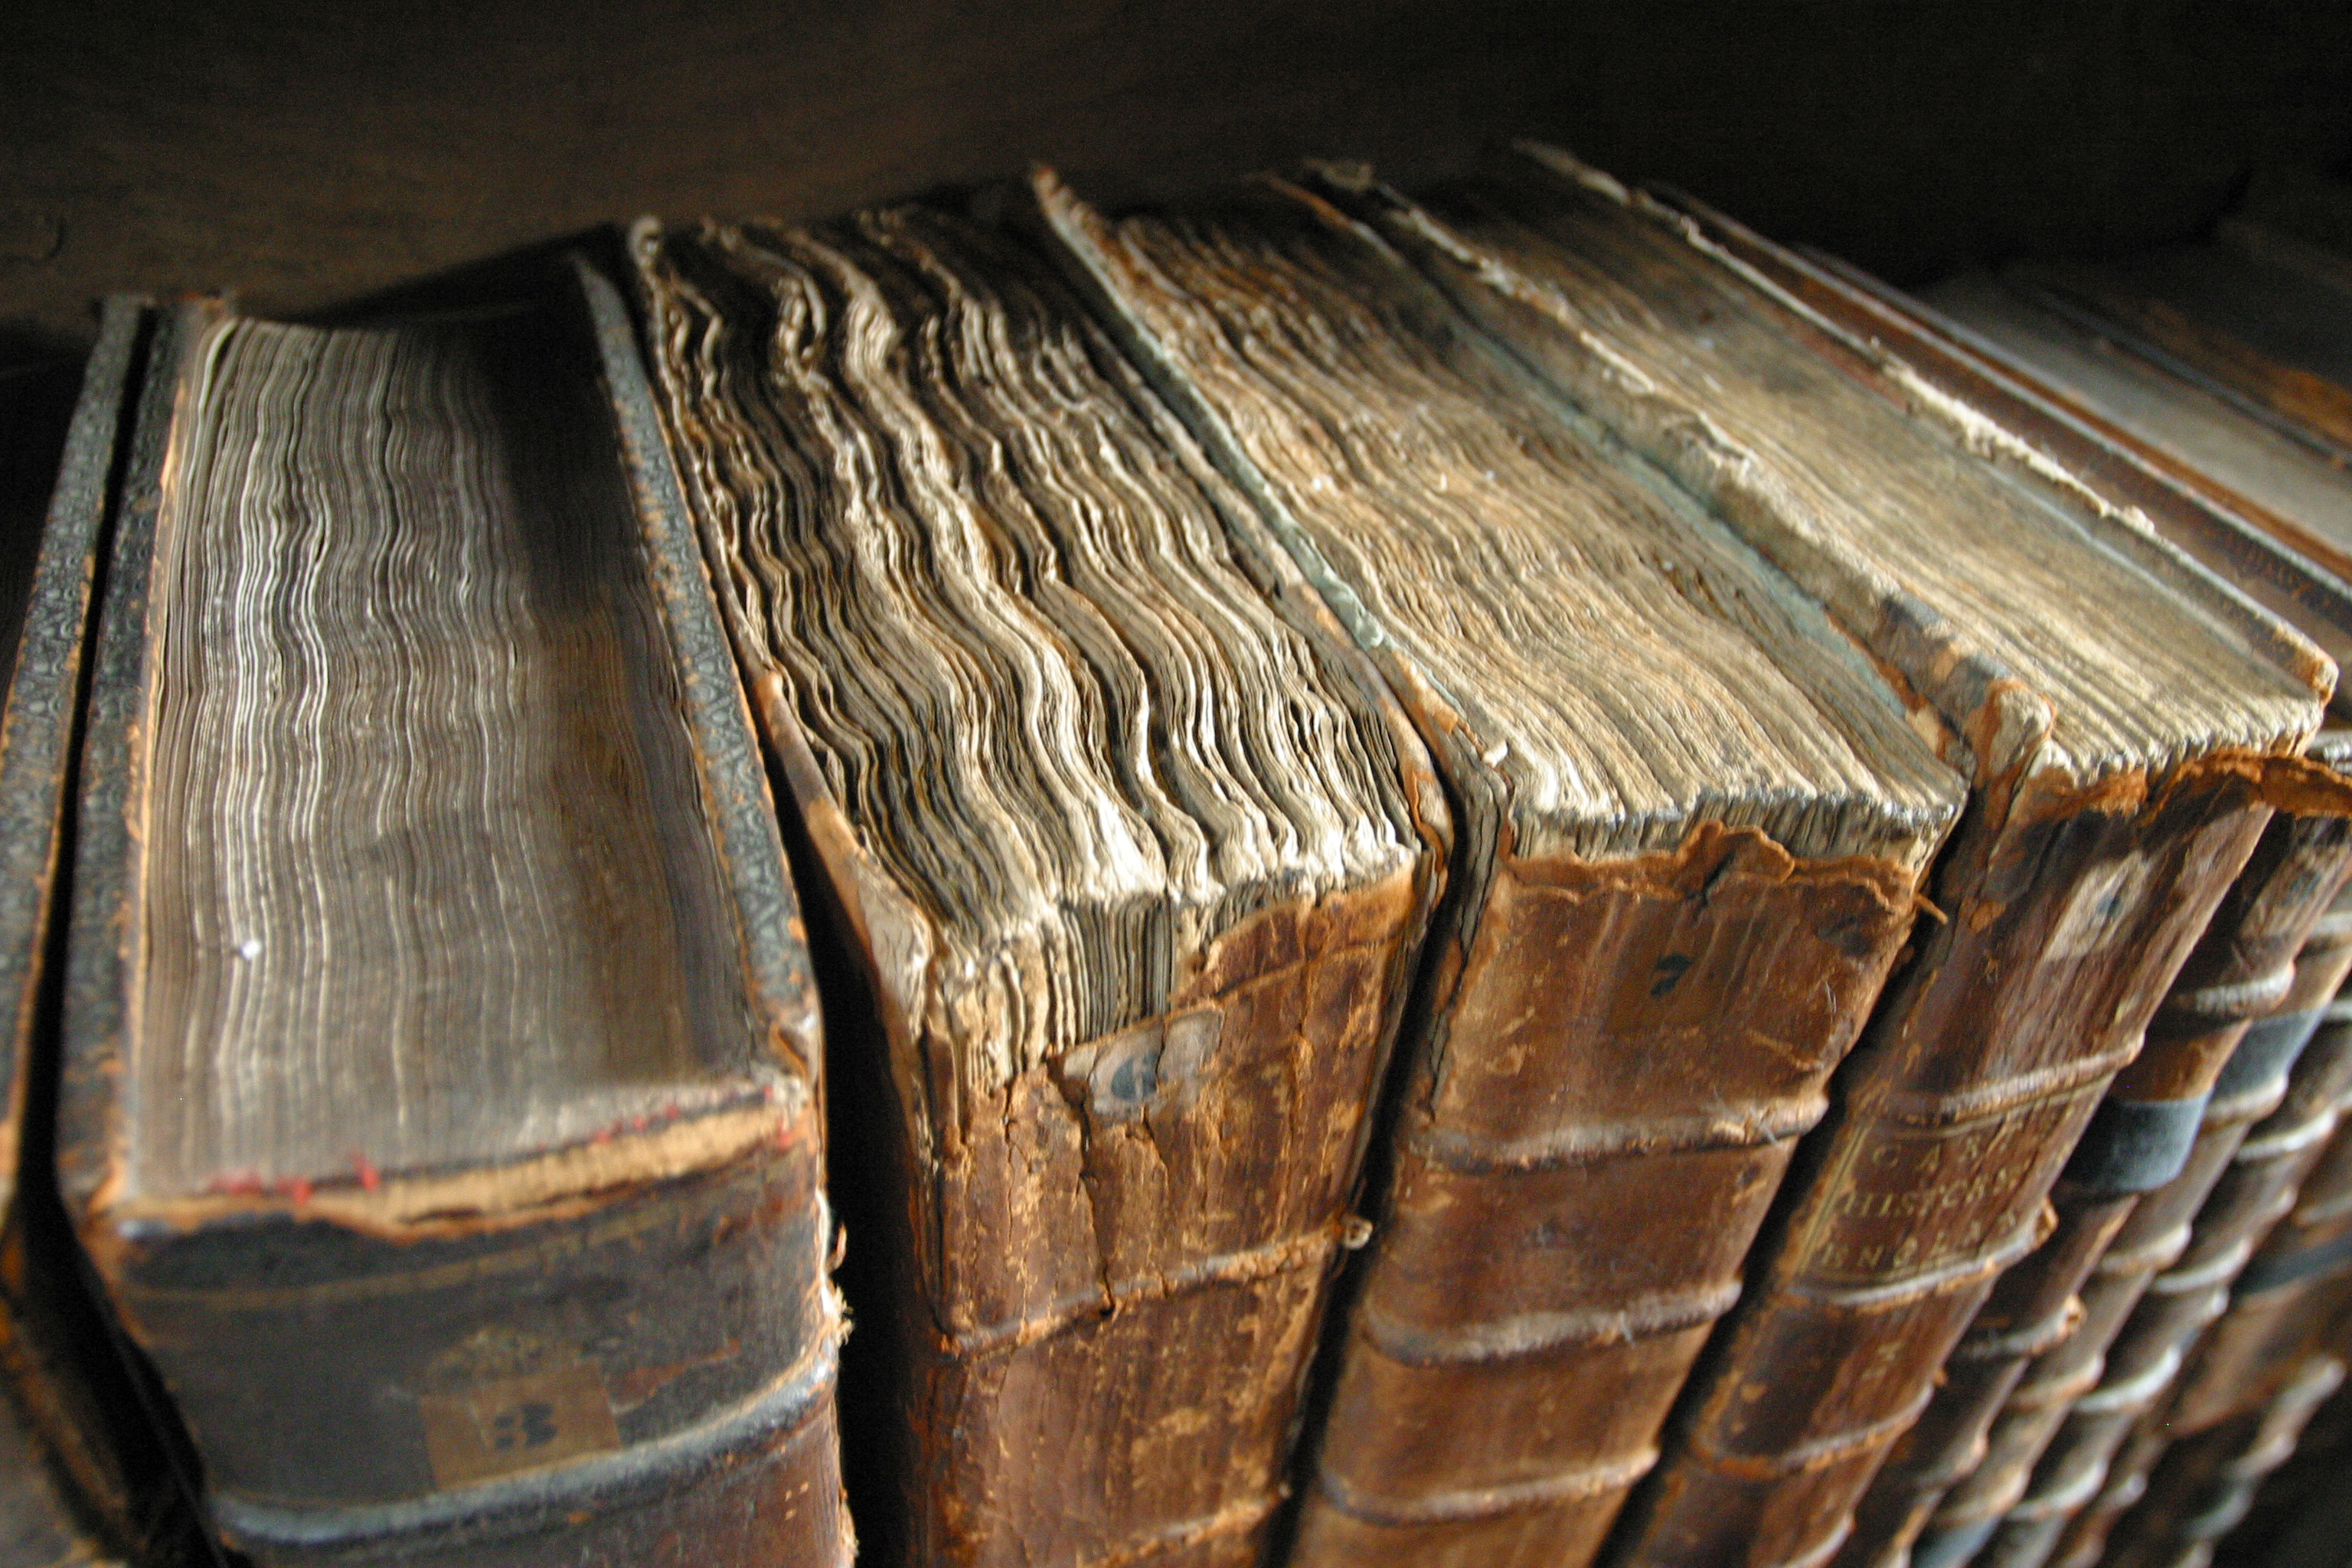 Tom Murphy, Worn books at the library of Merton College, Oxford. CC BY-SA 3.0